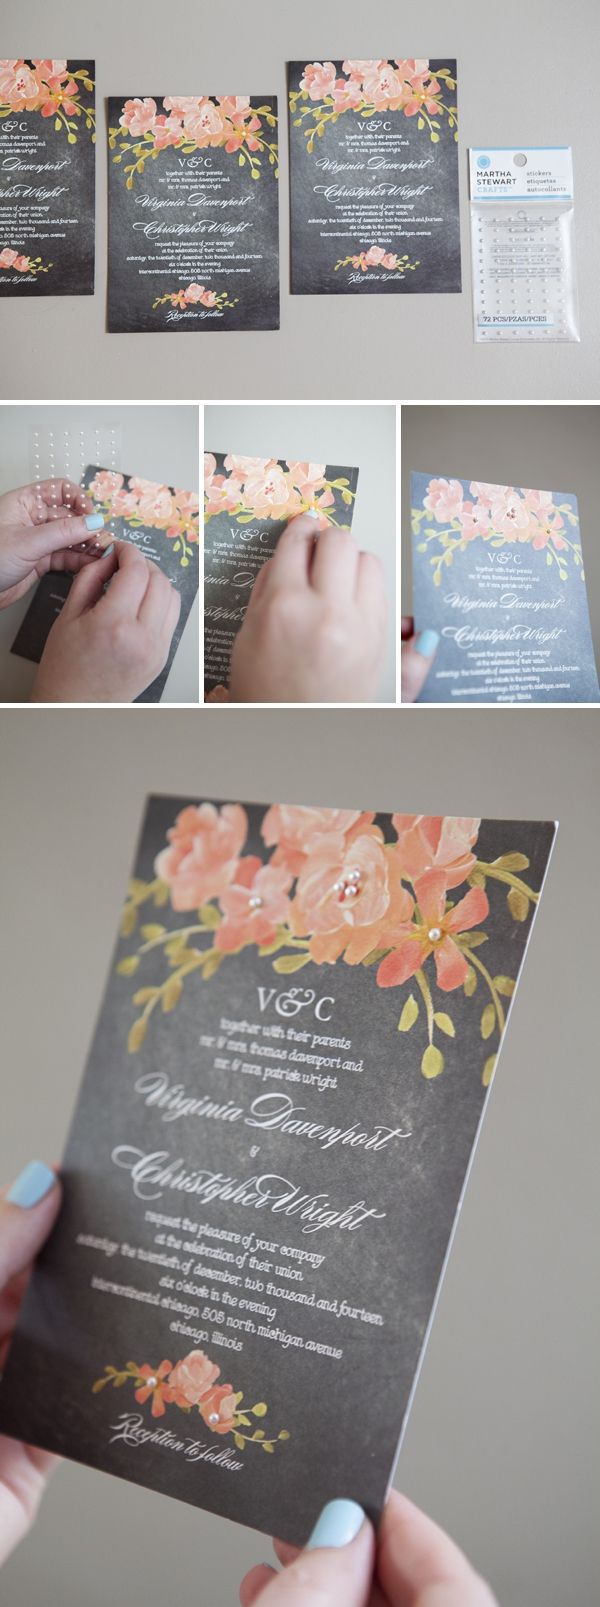 best images about weddinginvites on pinterest wedding